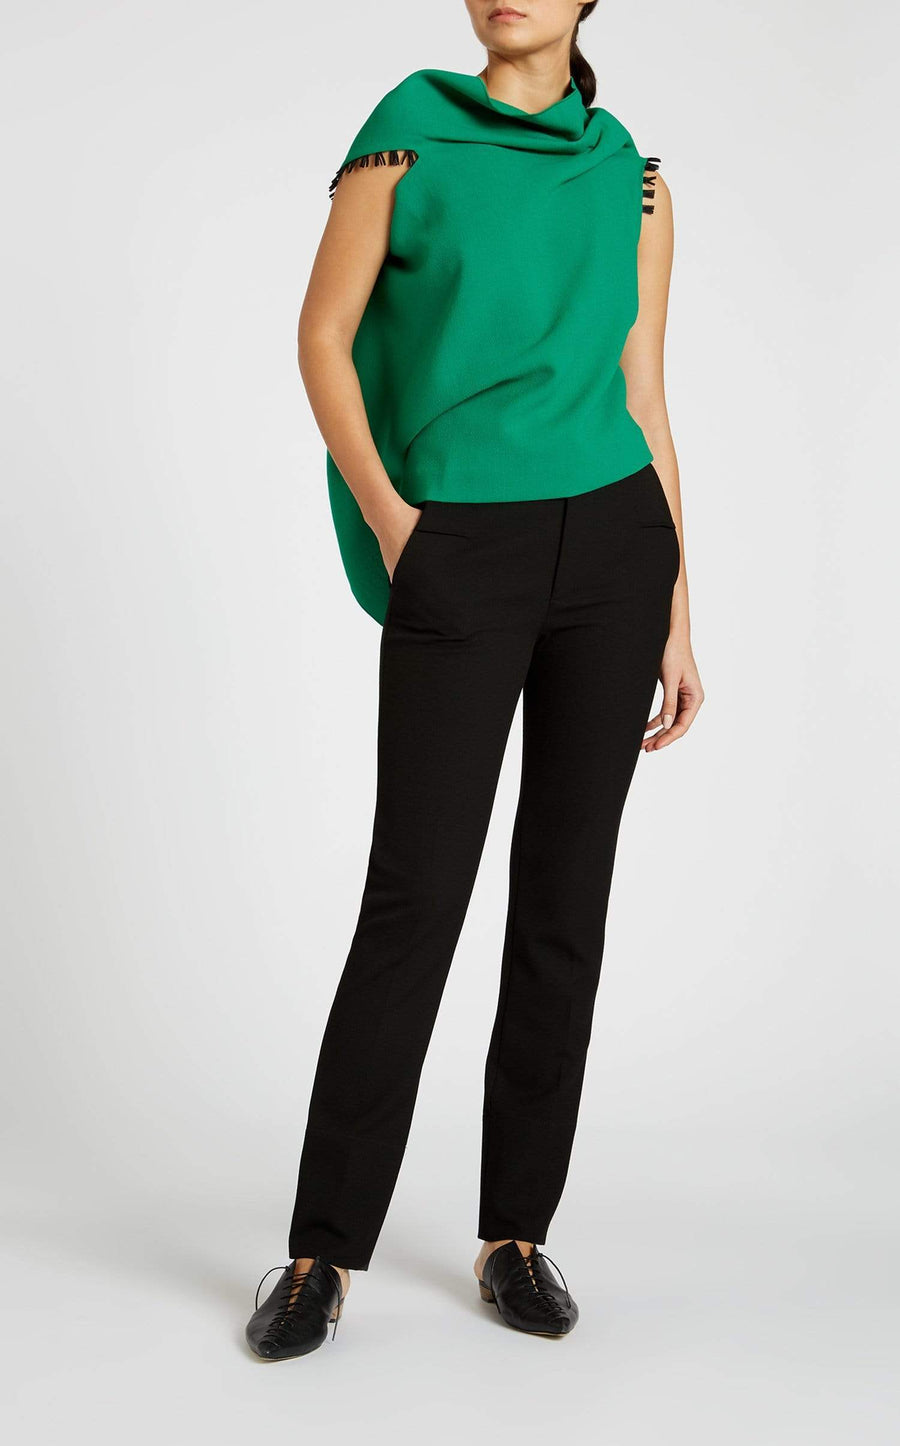 Eugene Top In Emerald/Black from Roland Mouret